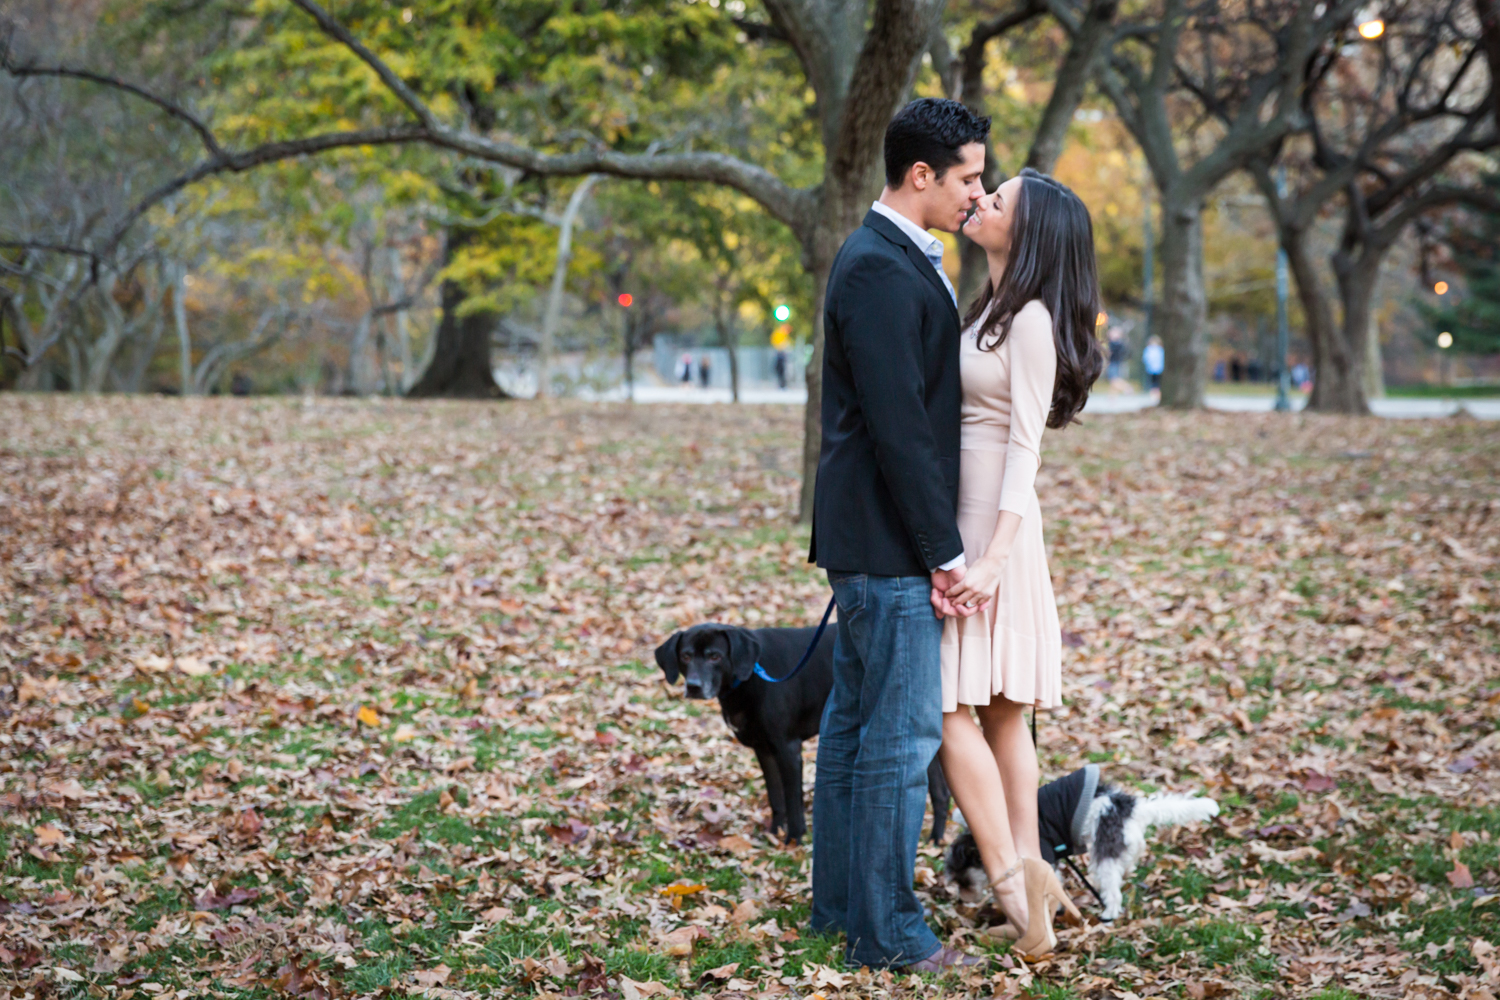 Couple kissing with two dogs at their feet